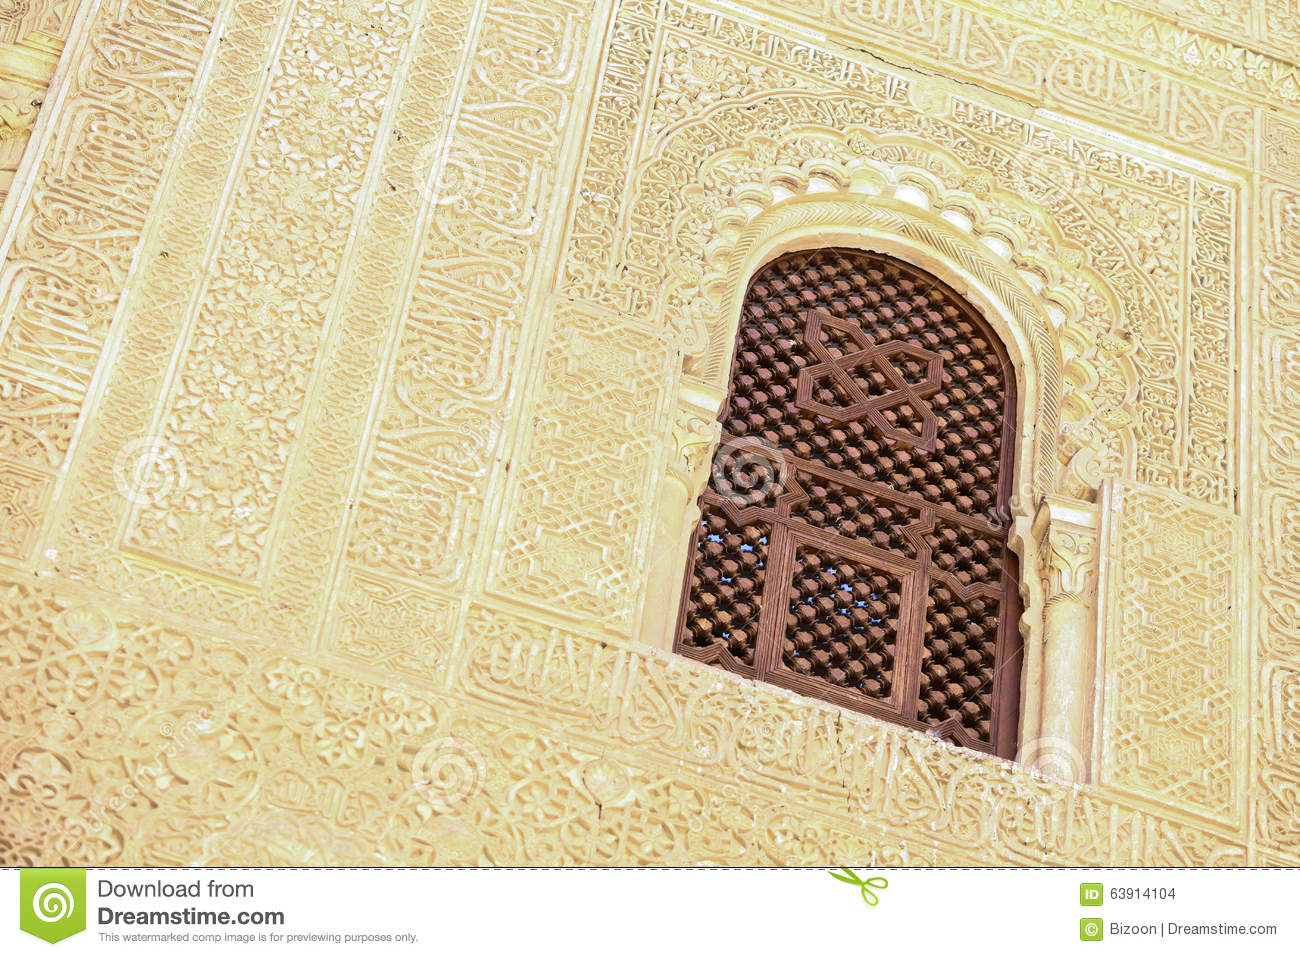 Arabic decorations detail stock photo. Image of ornament - 63914104